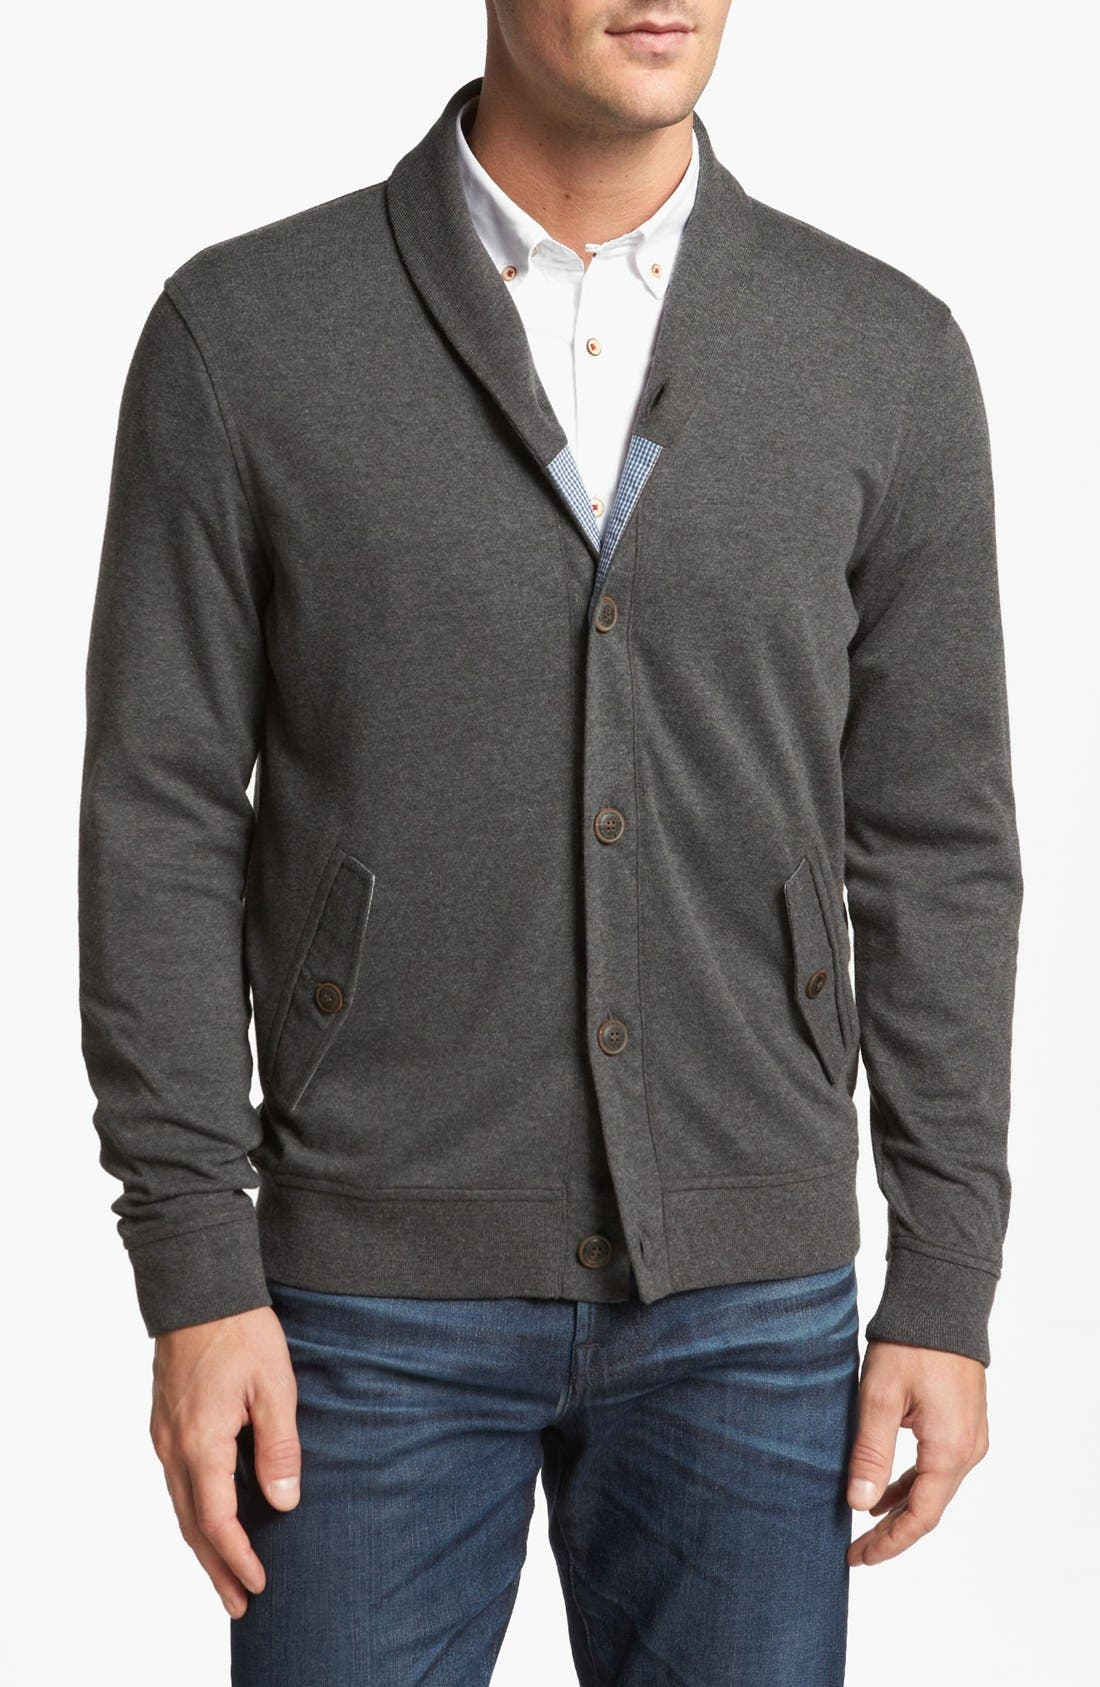 Alternate Image 1 Selected - Ted Baker London 'Norre' Shawl Collar Knit Jersey Cardigan